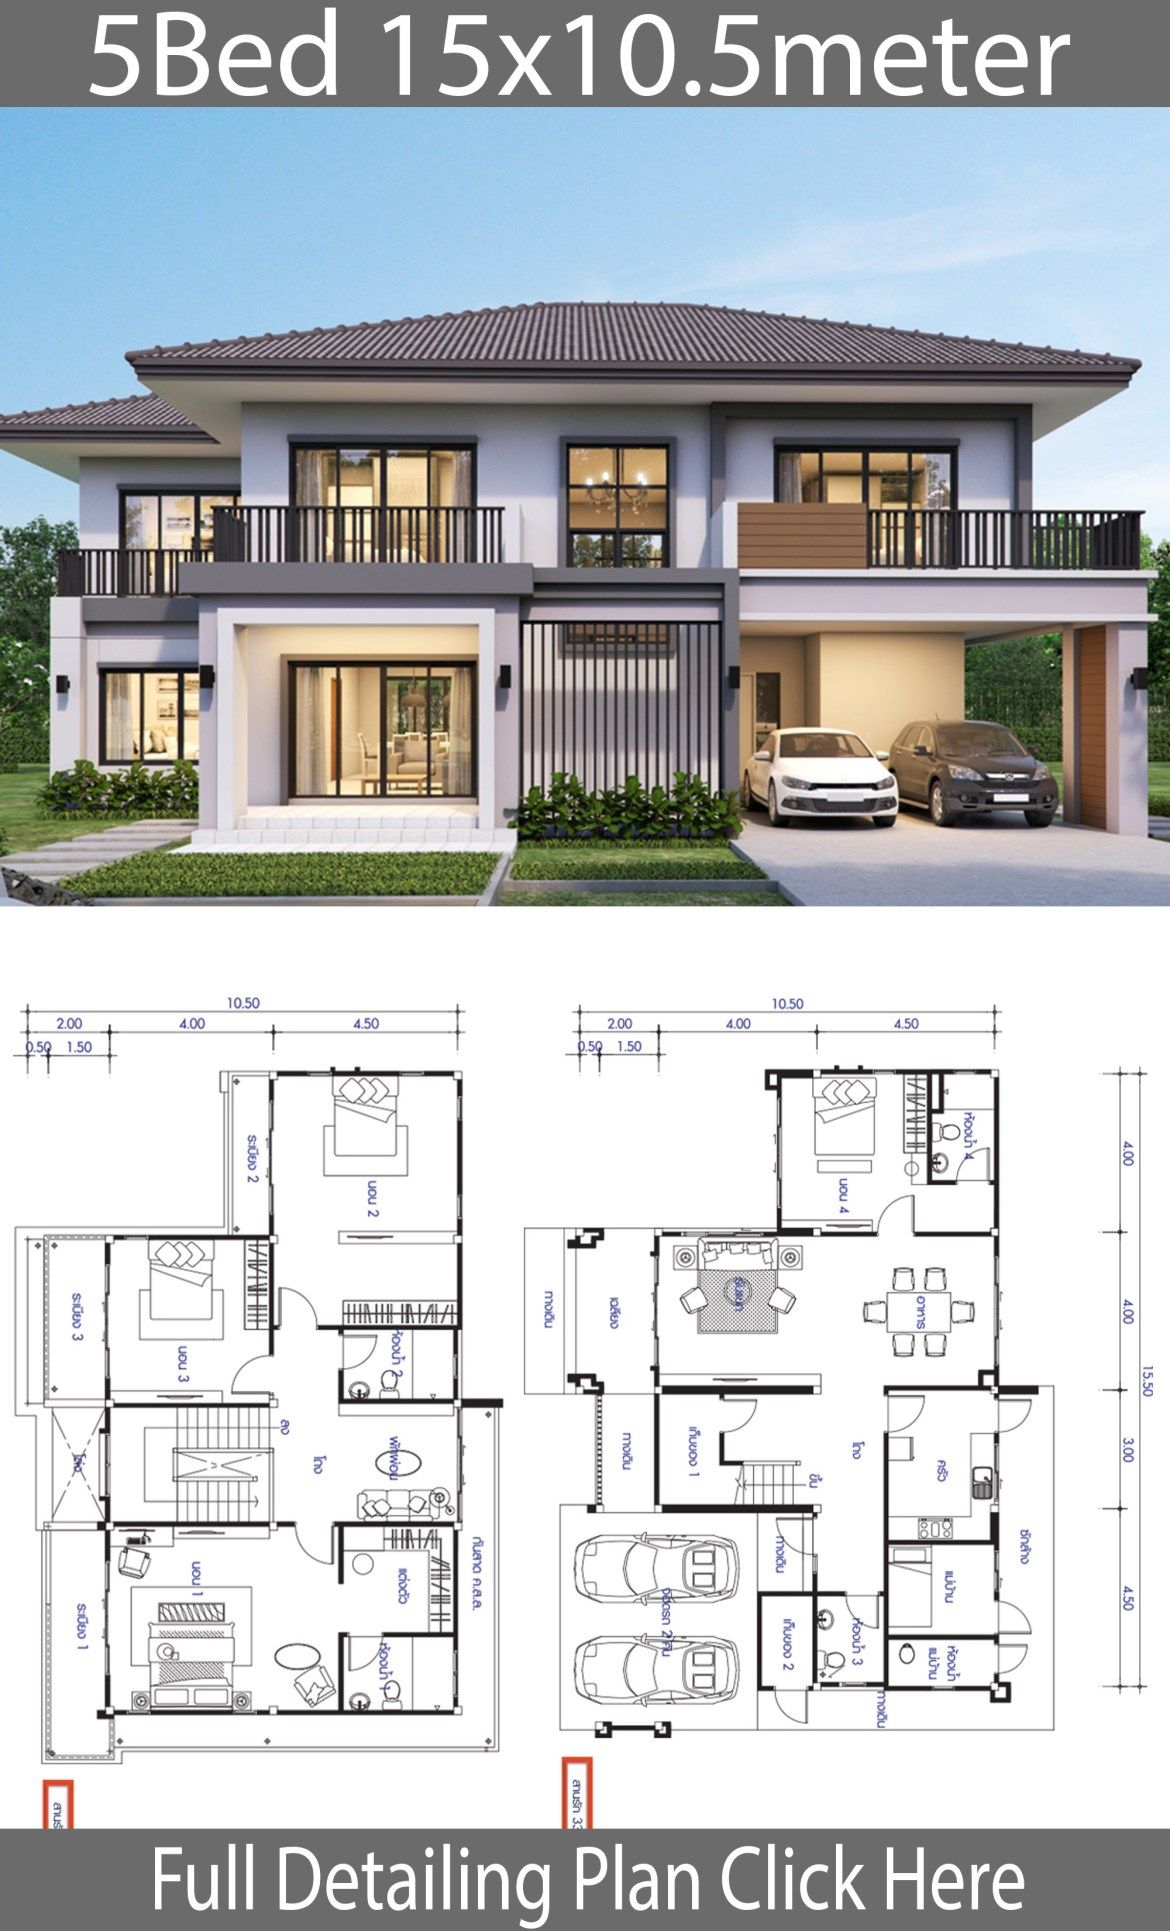 House Design Plan 15 5x10 5m With 5 Bedrooms Home Design With Plansearch House Plans Mansion Duplex House Design House Architecture Design